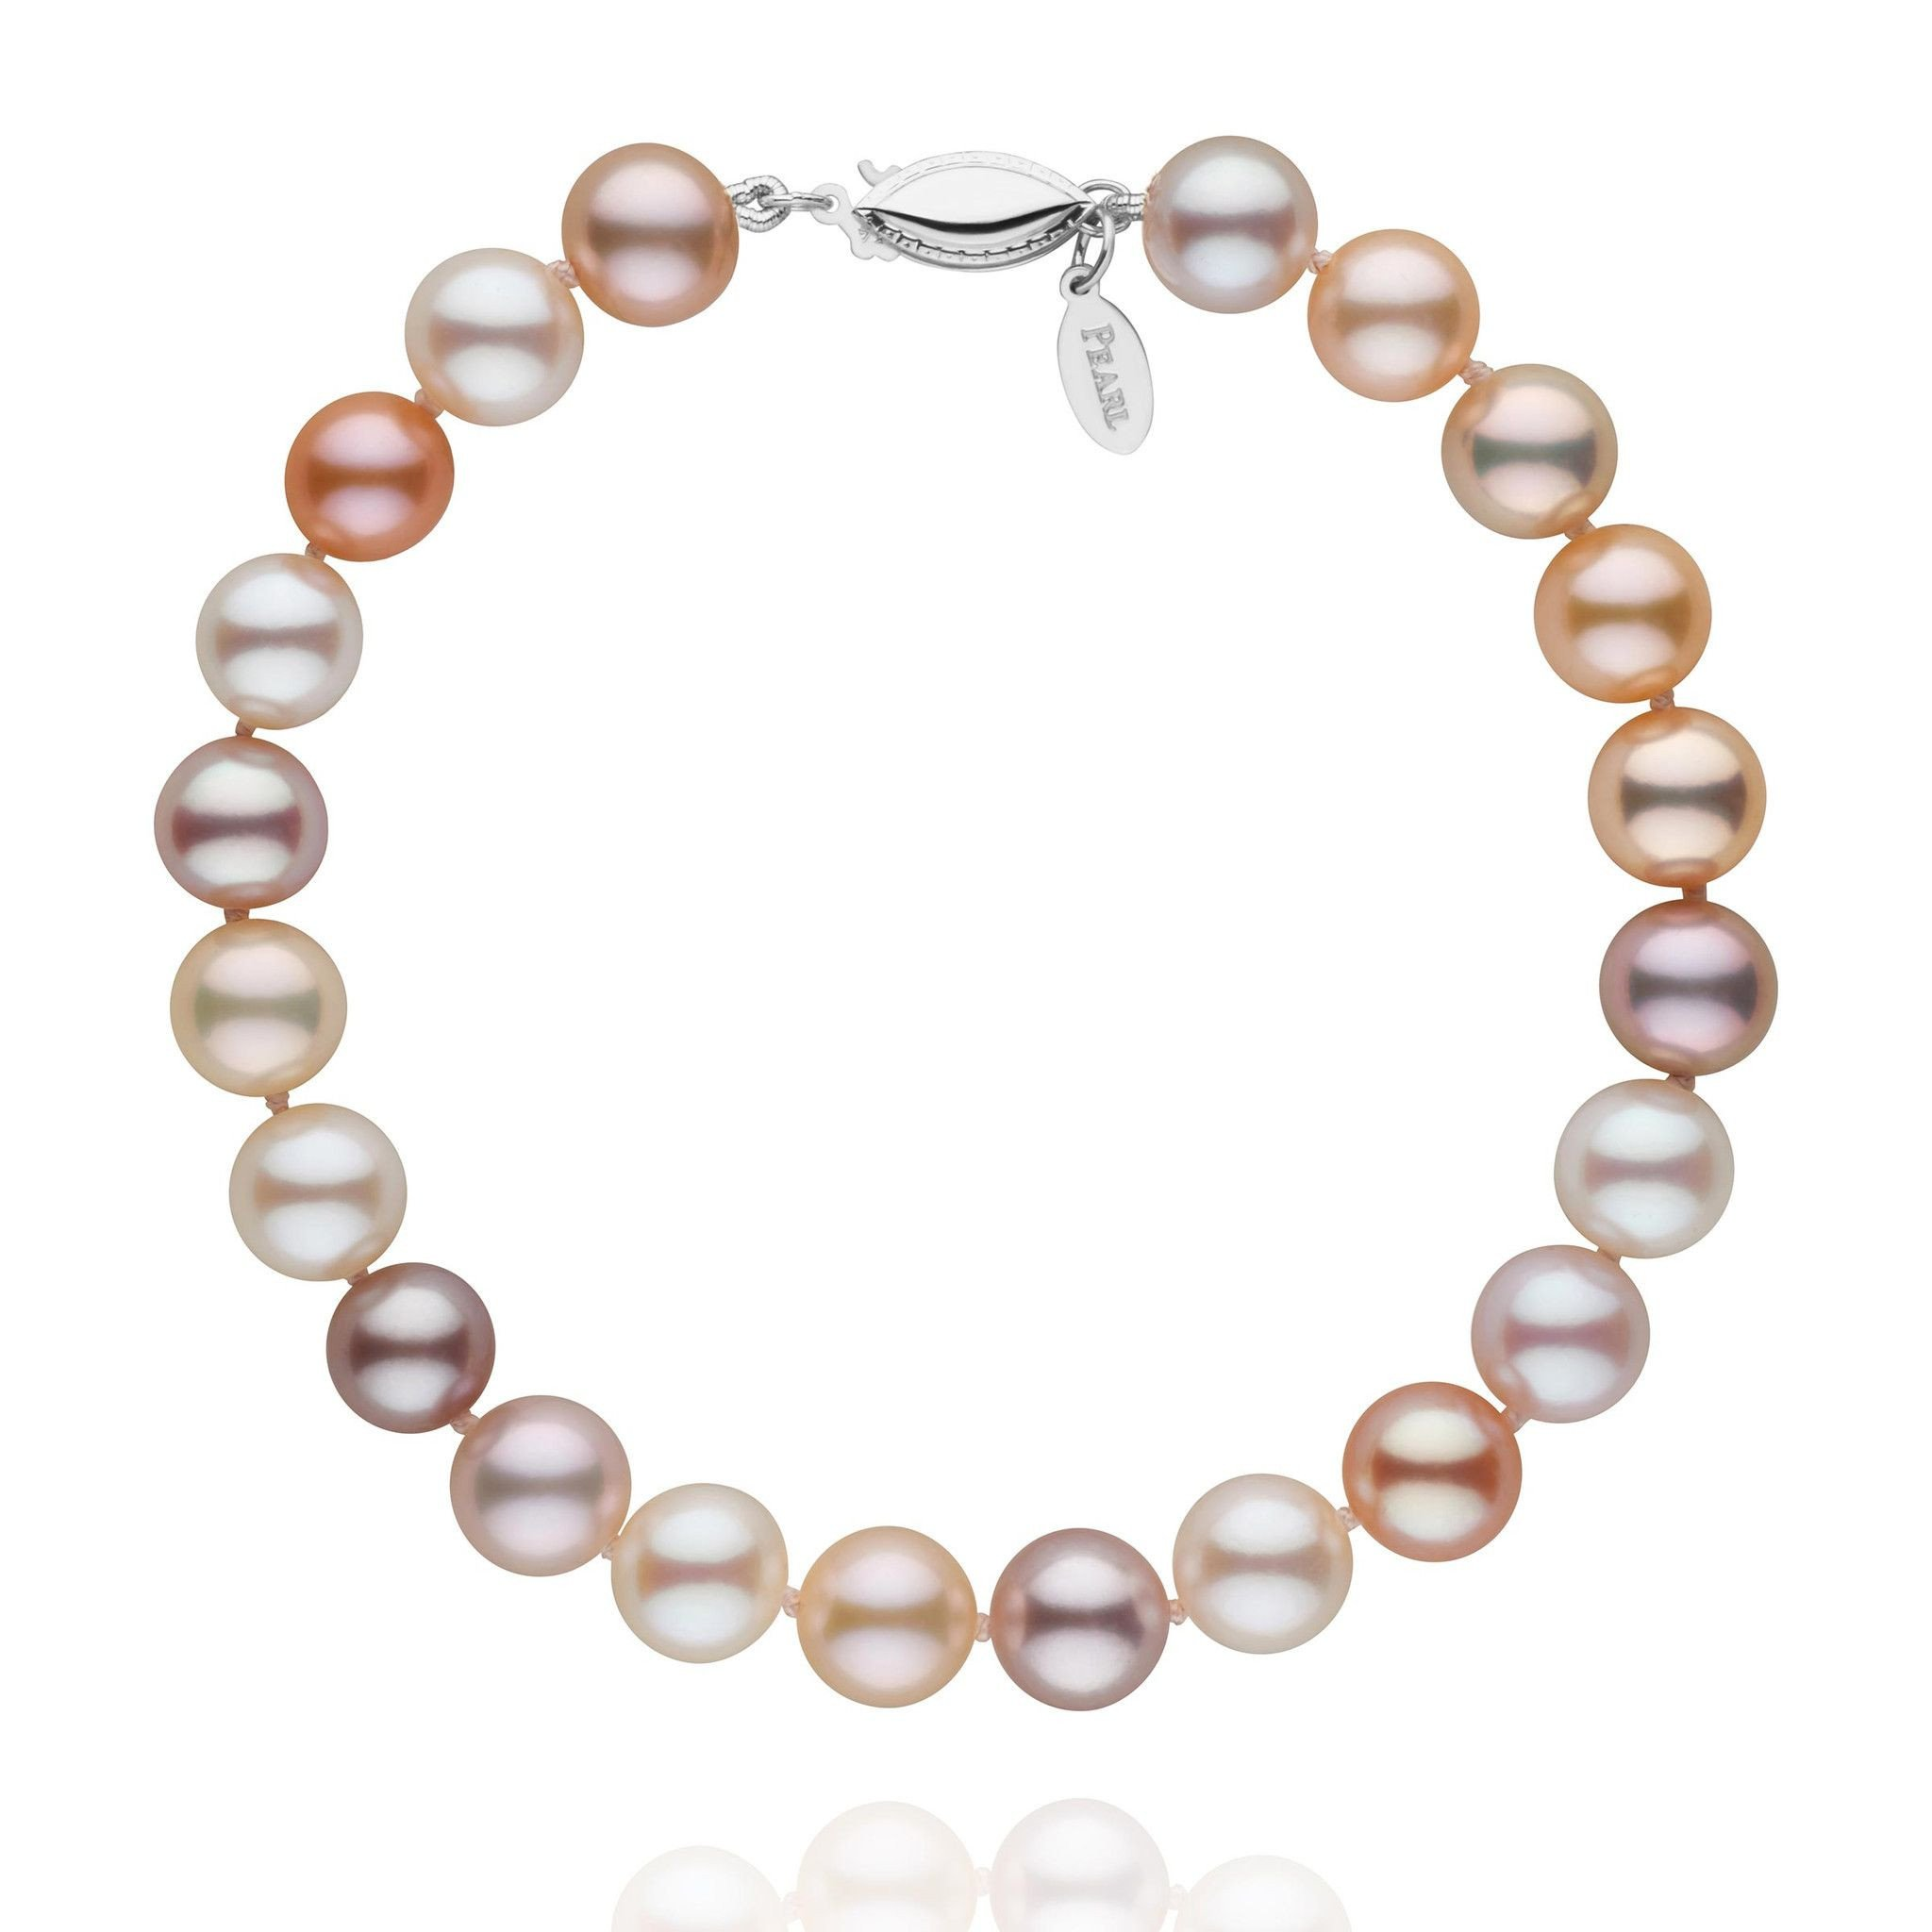 7.5-8.0 mm Multicolor Freshadama Cultured Pearl Bracelet - 7 inch - 14K White Gold